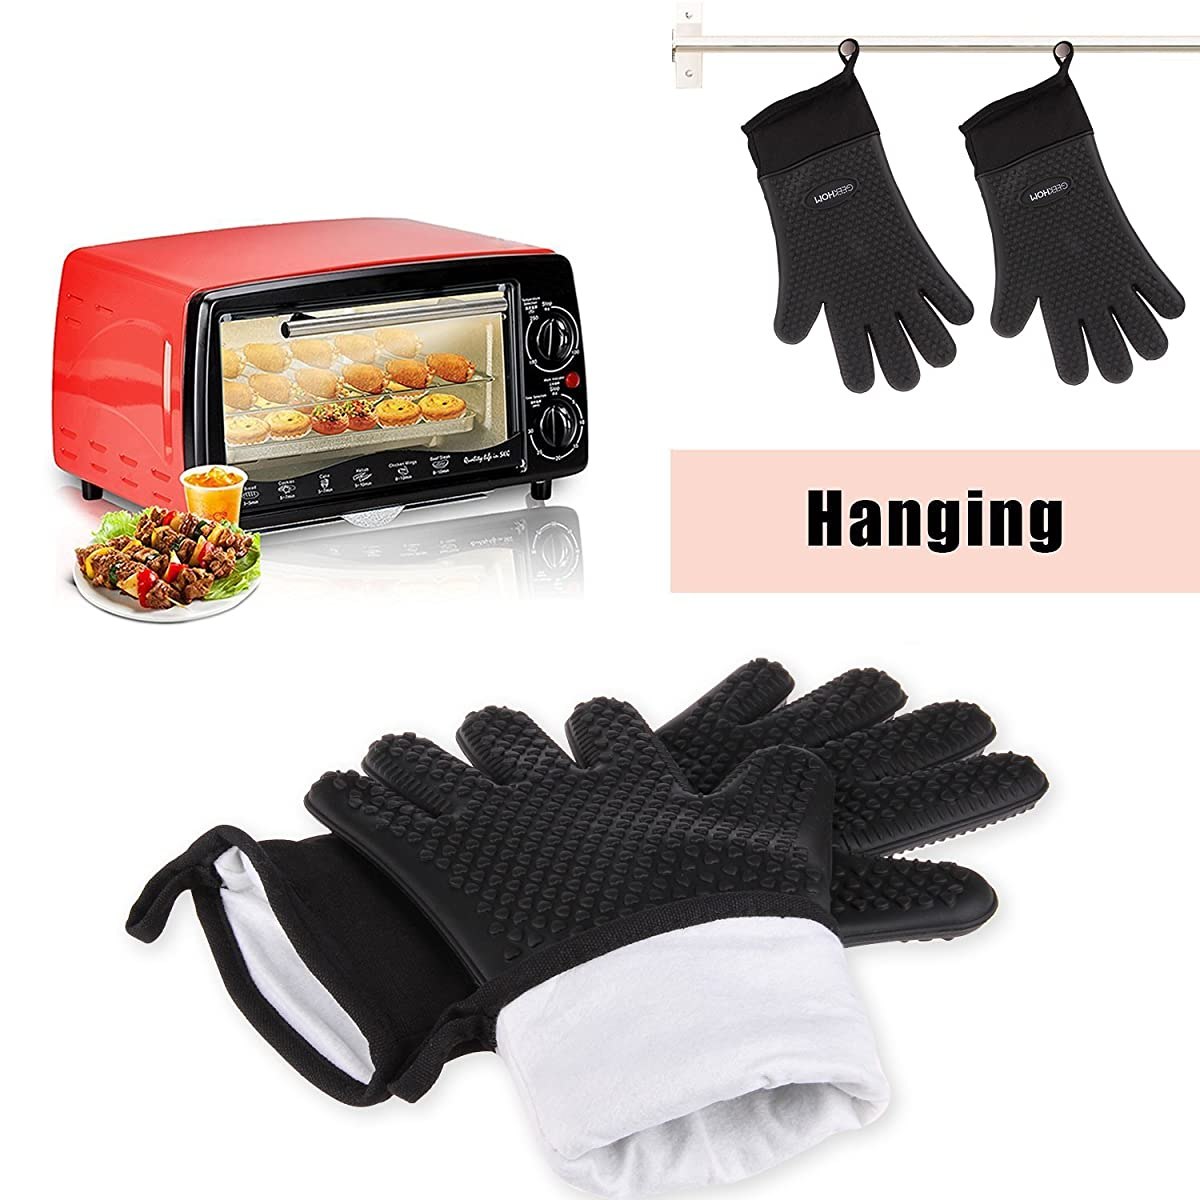 GEEKHOM Grilling Gloves, Heat Resistant Gloves BBQ Kitchen Silicone Oven Mitts, Long Waterproof Non-slip Potholder for Barbecue, Cooking, Baking (Black)